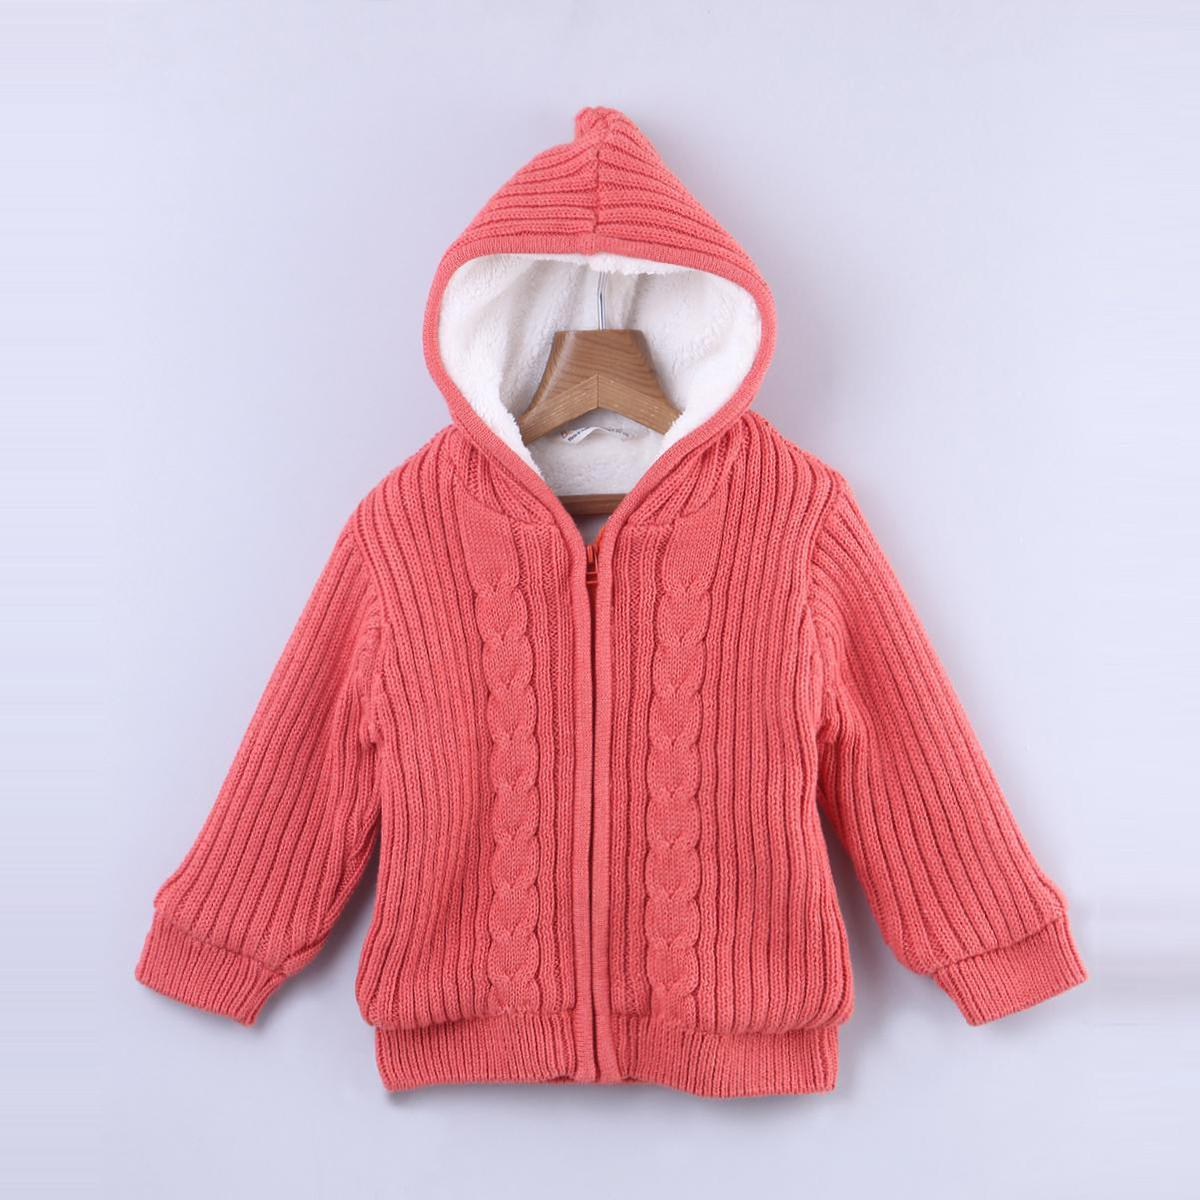 Beebay - Orange Colored Cable Cotton Sweater For Kids Boys